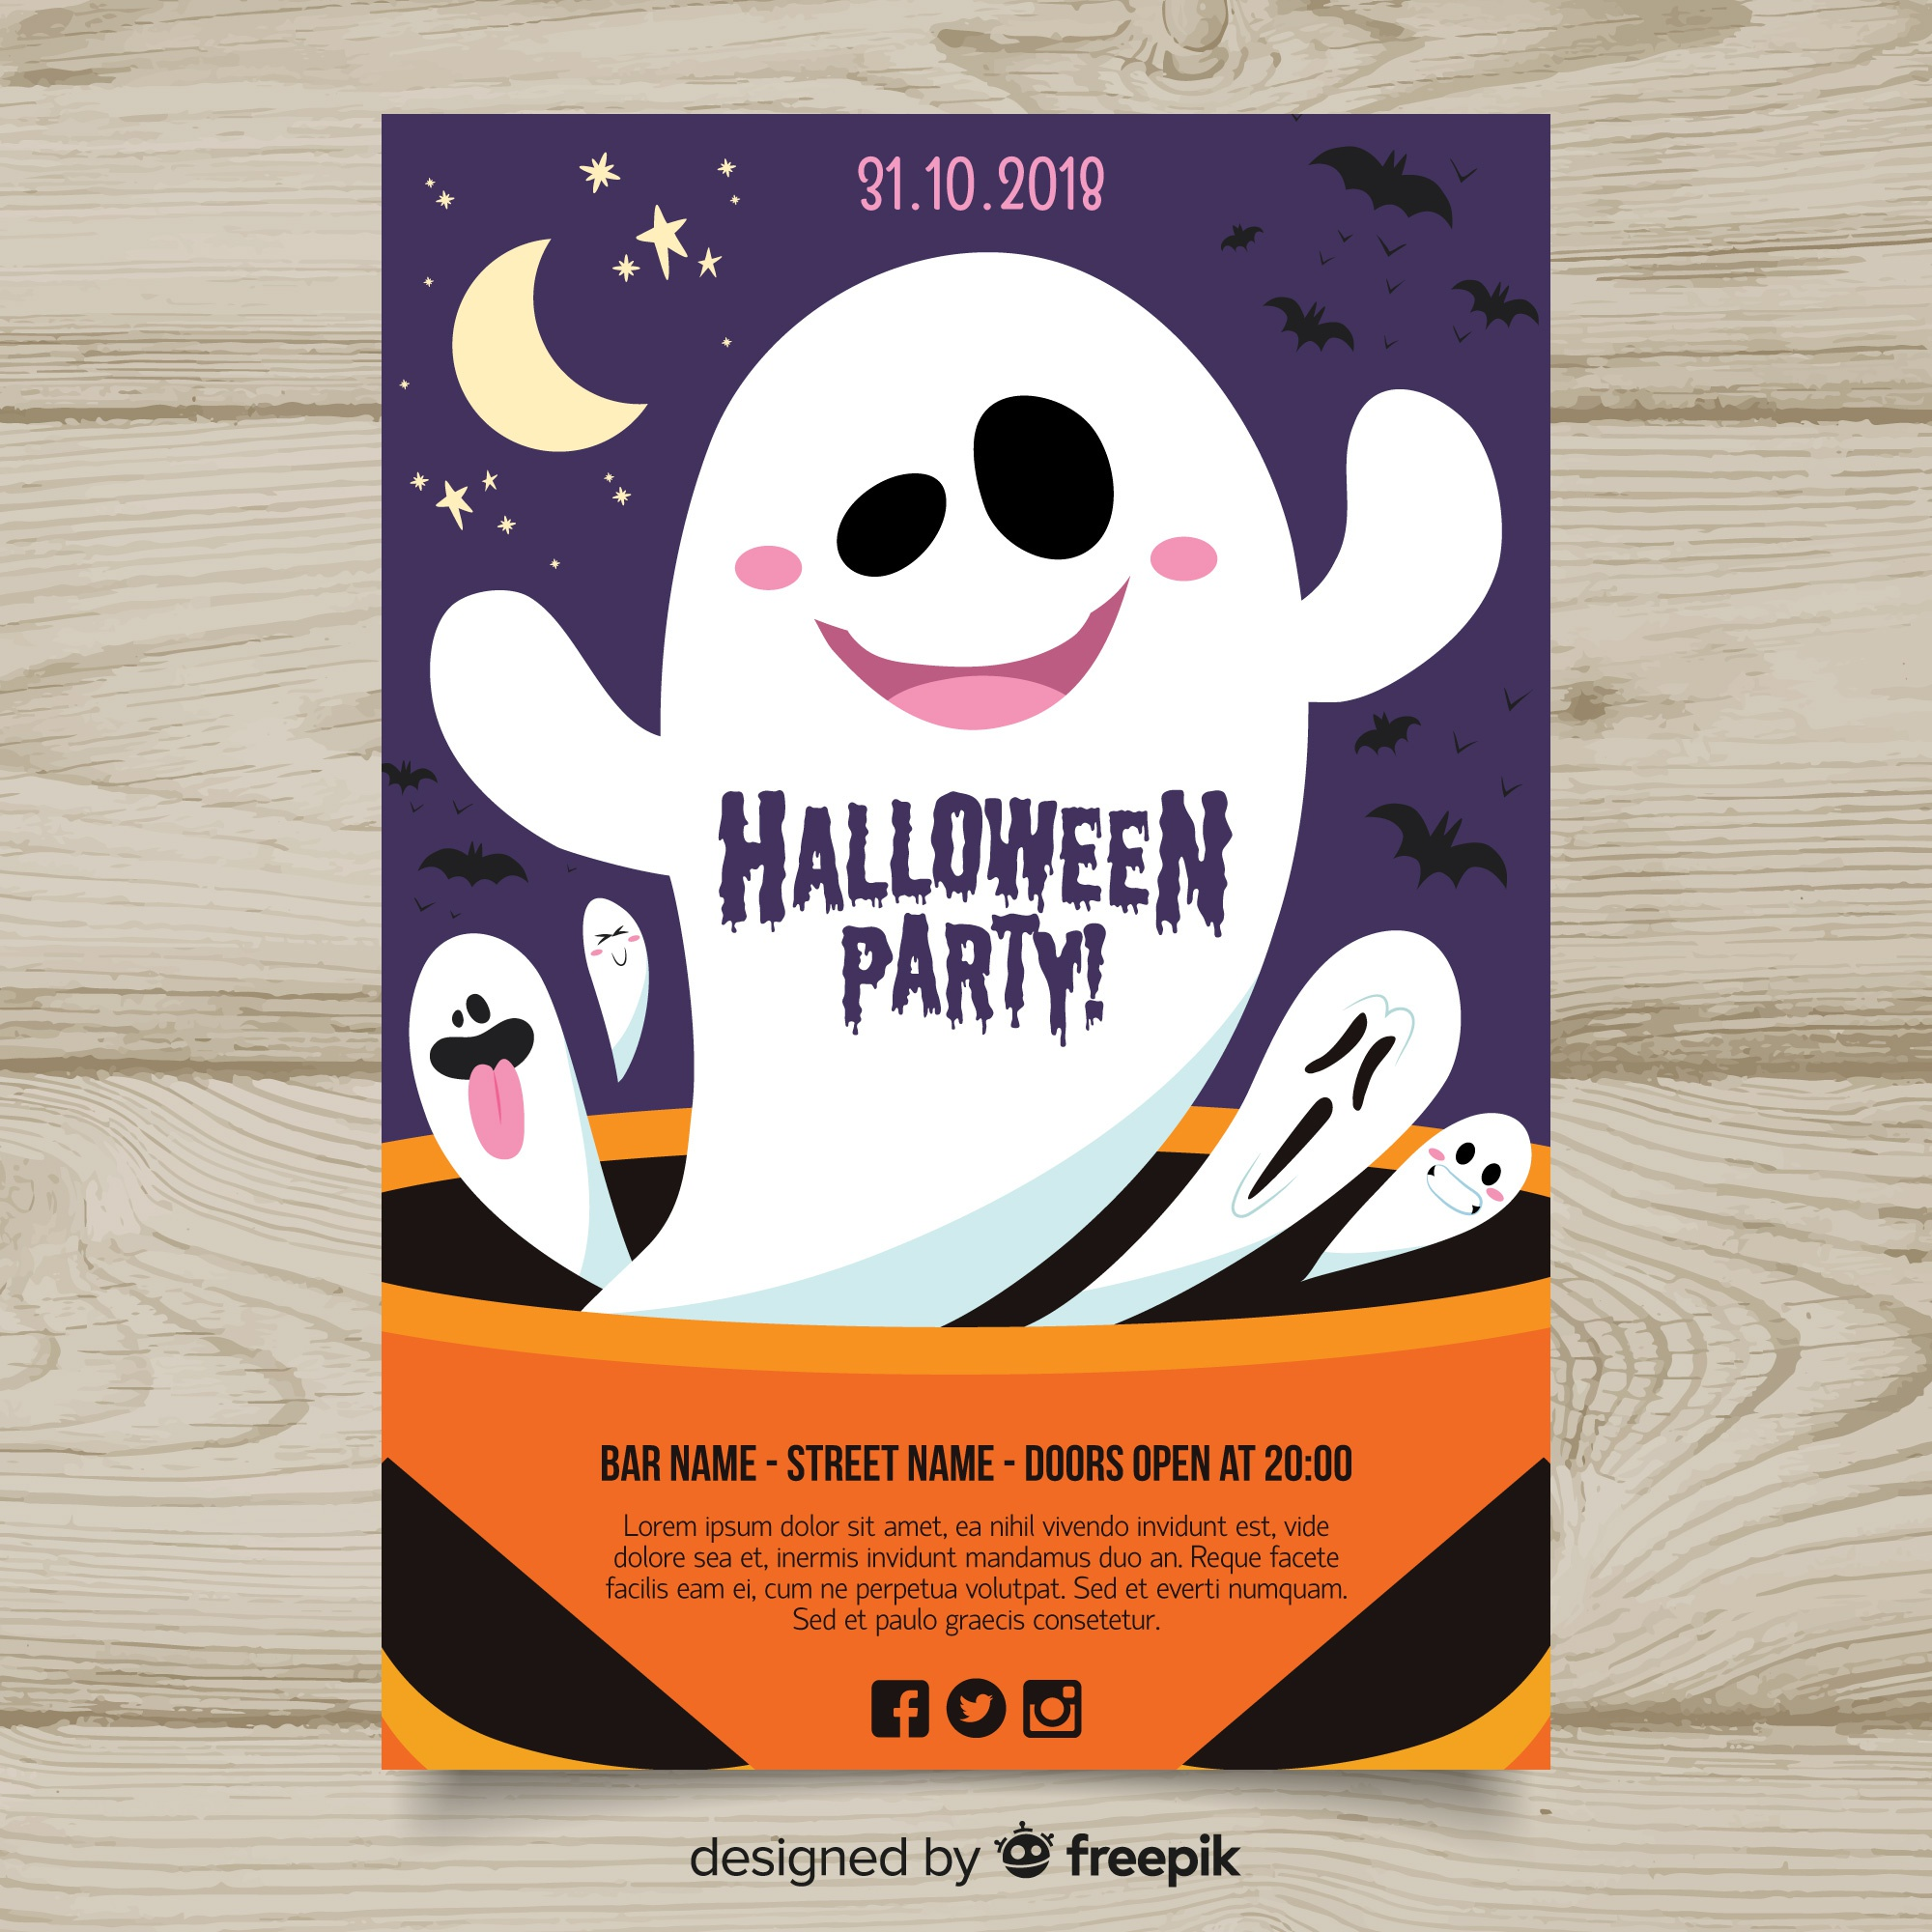 Modern hand drawn halloween party poster